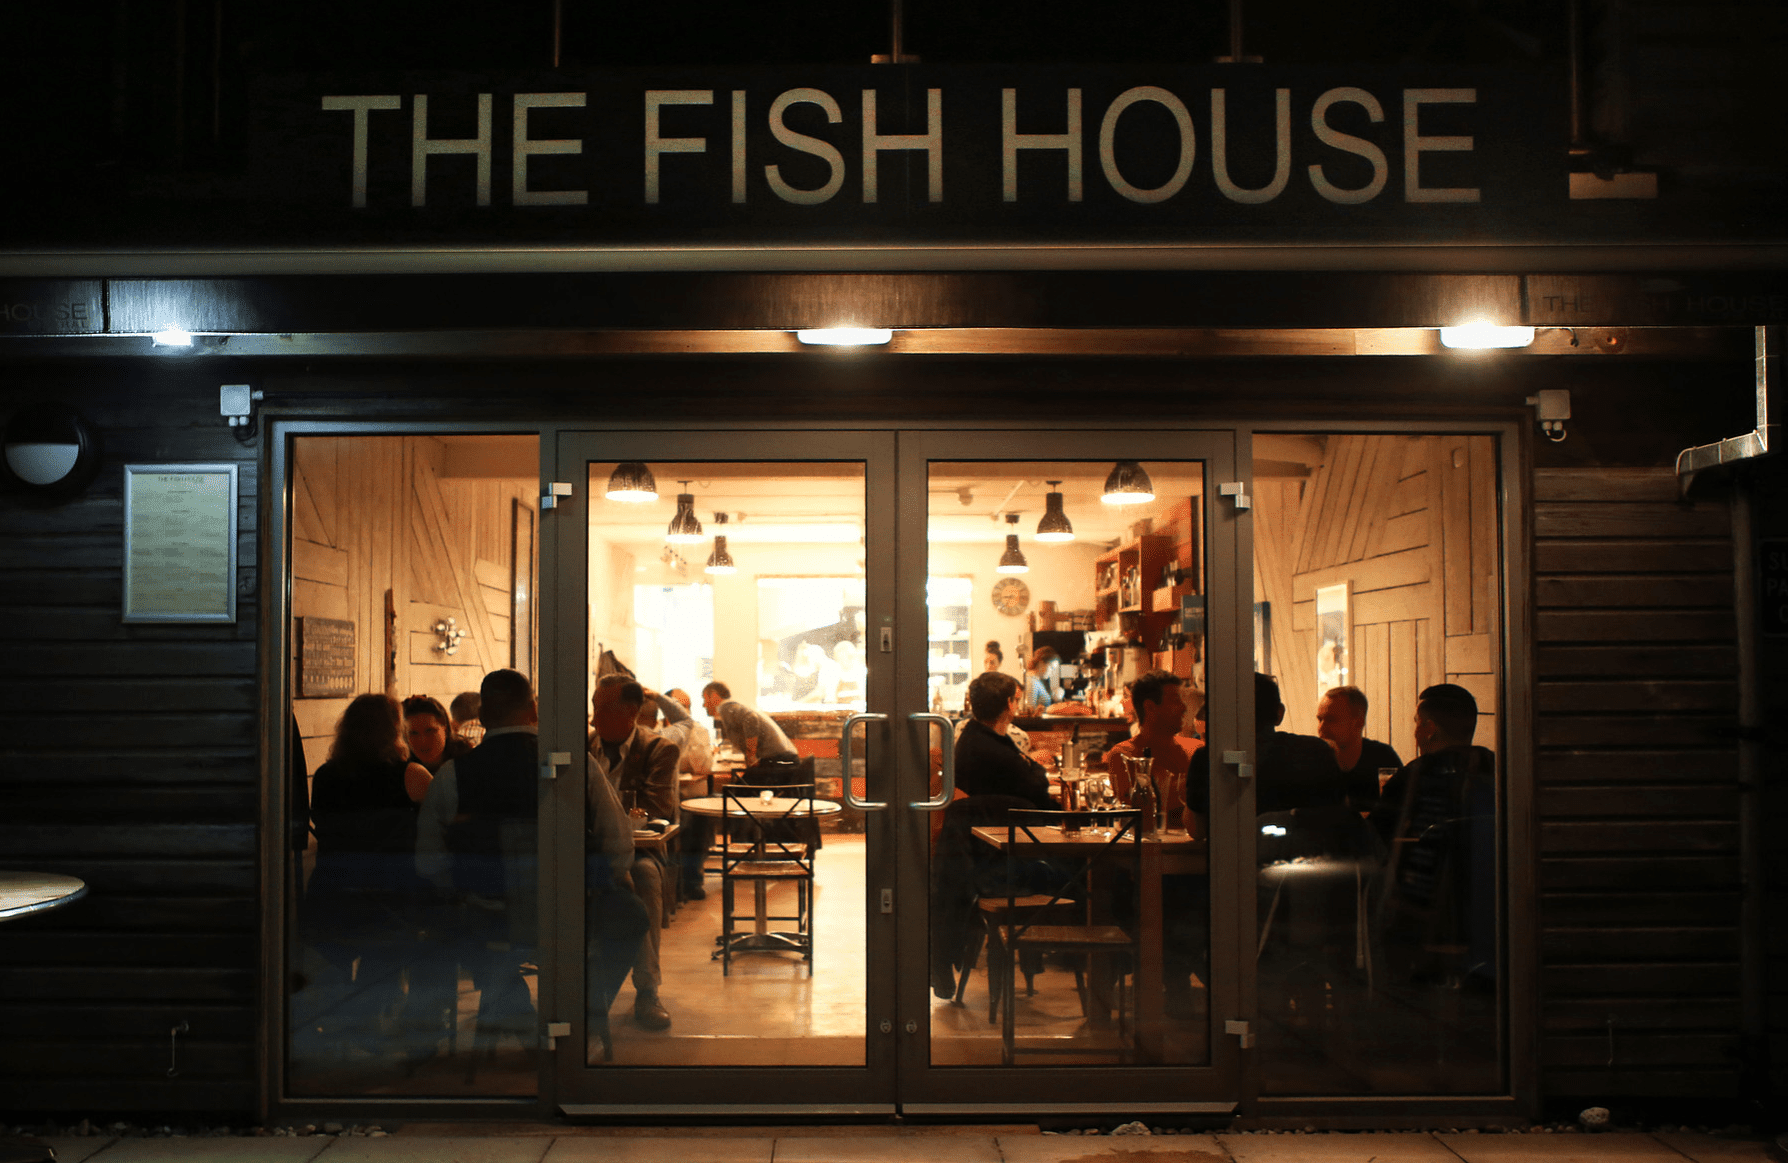 View of people eating inside The Fish House restaurant at night